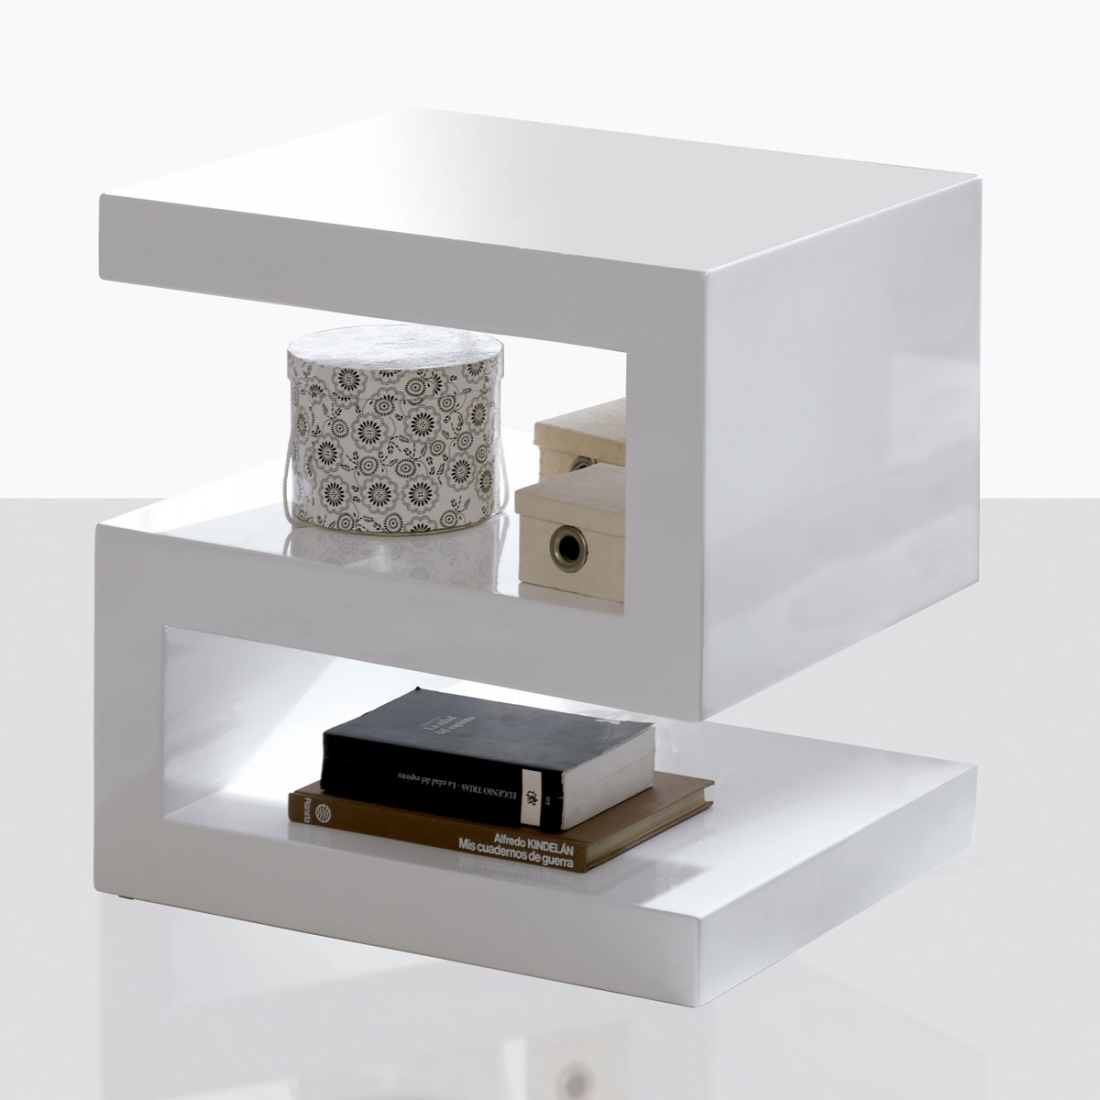 Table basse design collection boustroph don - Table basse moderne divine collection ...